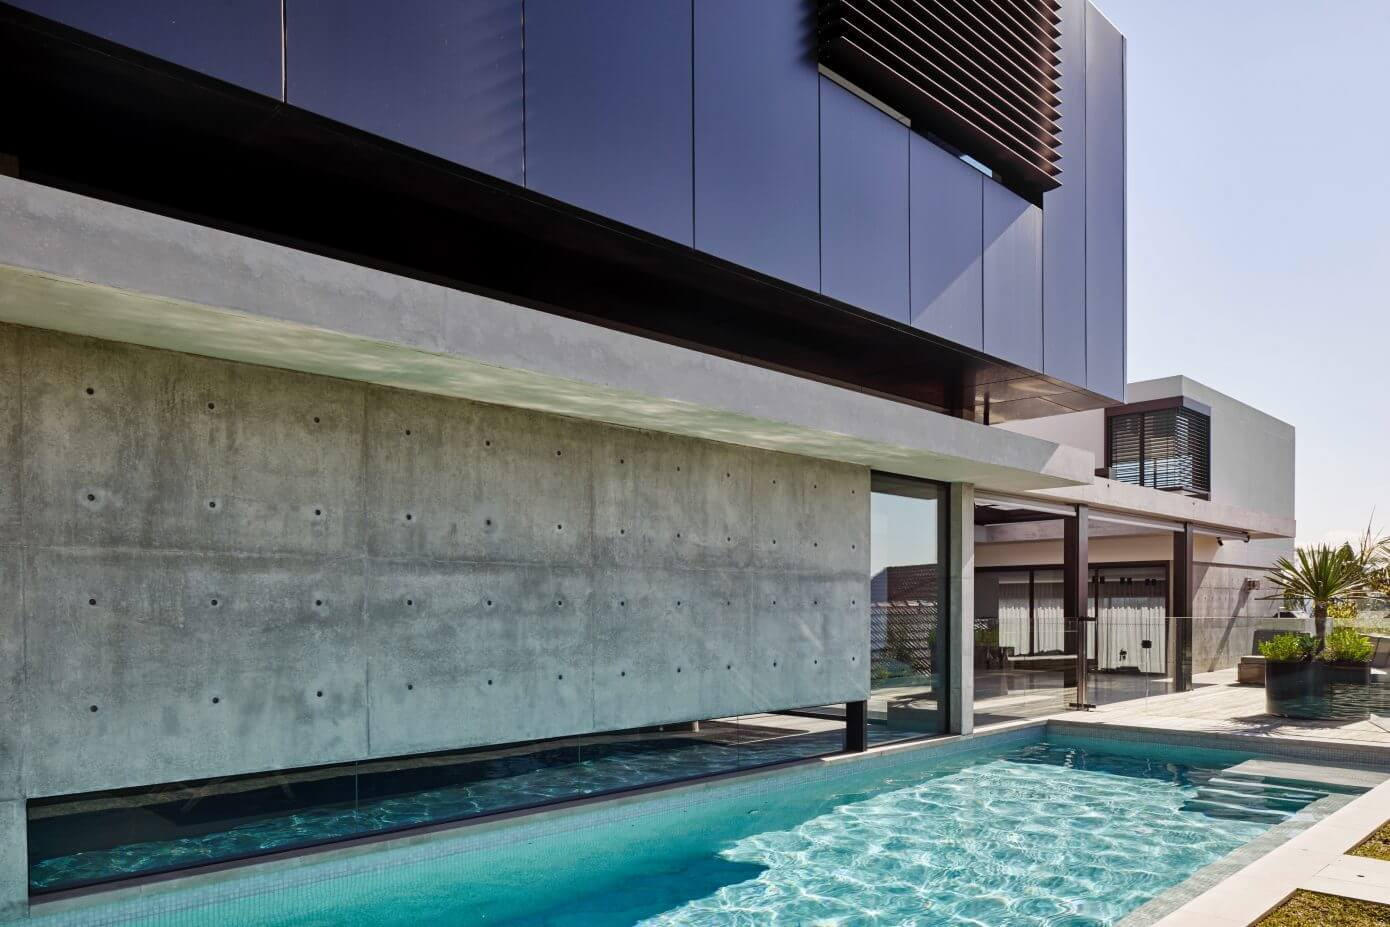 Vaucluse Residence by MHN Design Union